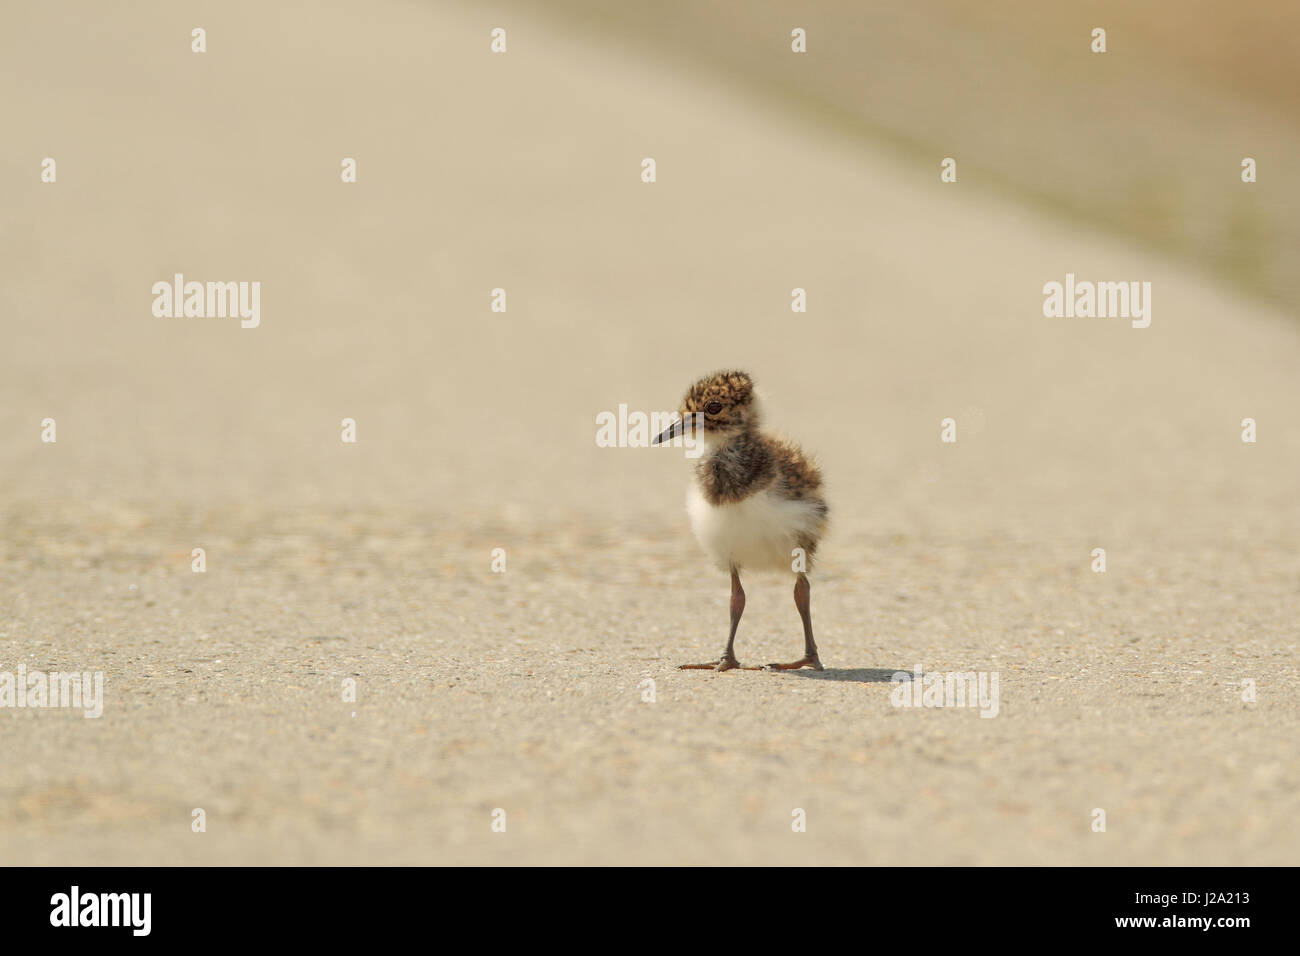 Young lapwing went out for a walk on the street, not realizing the risk of being hit by the traffic - Stock Image